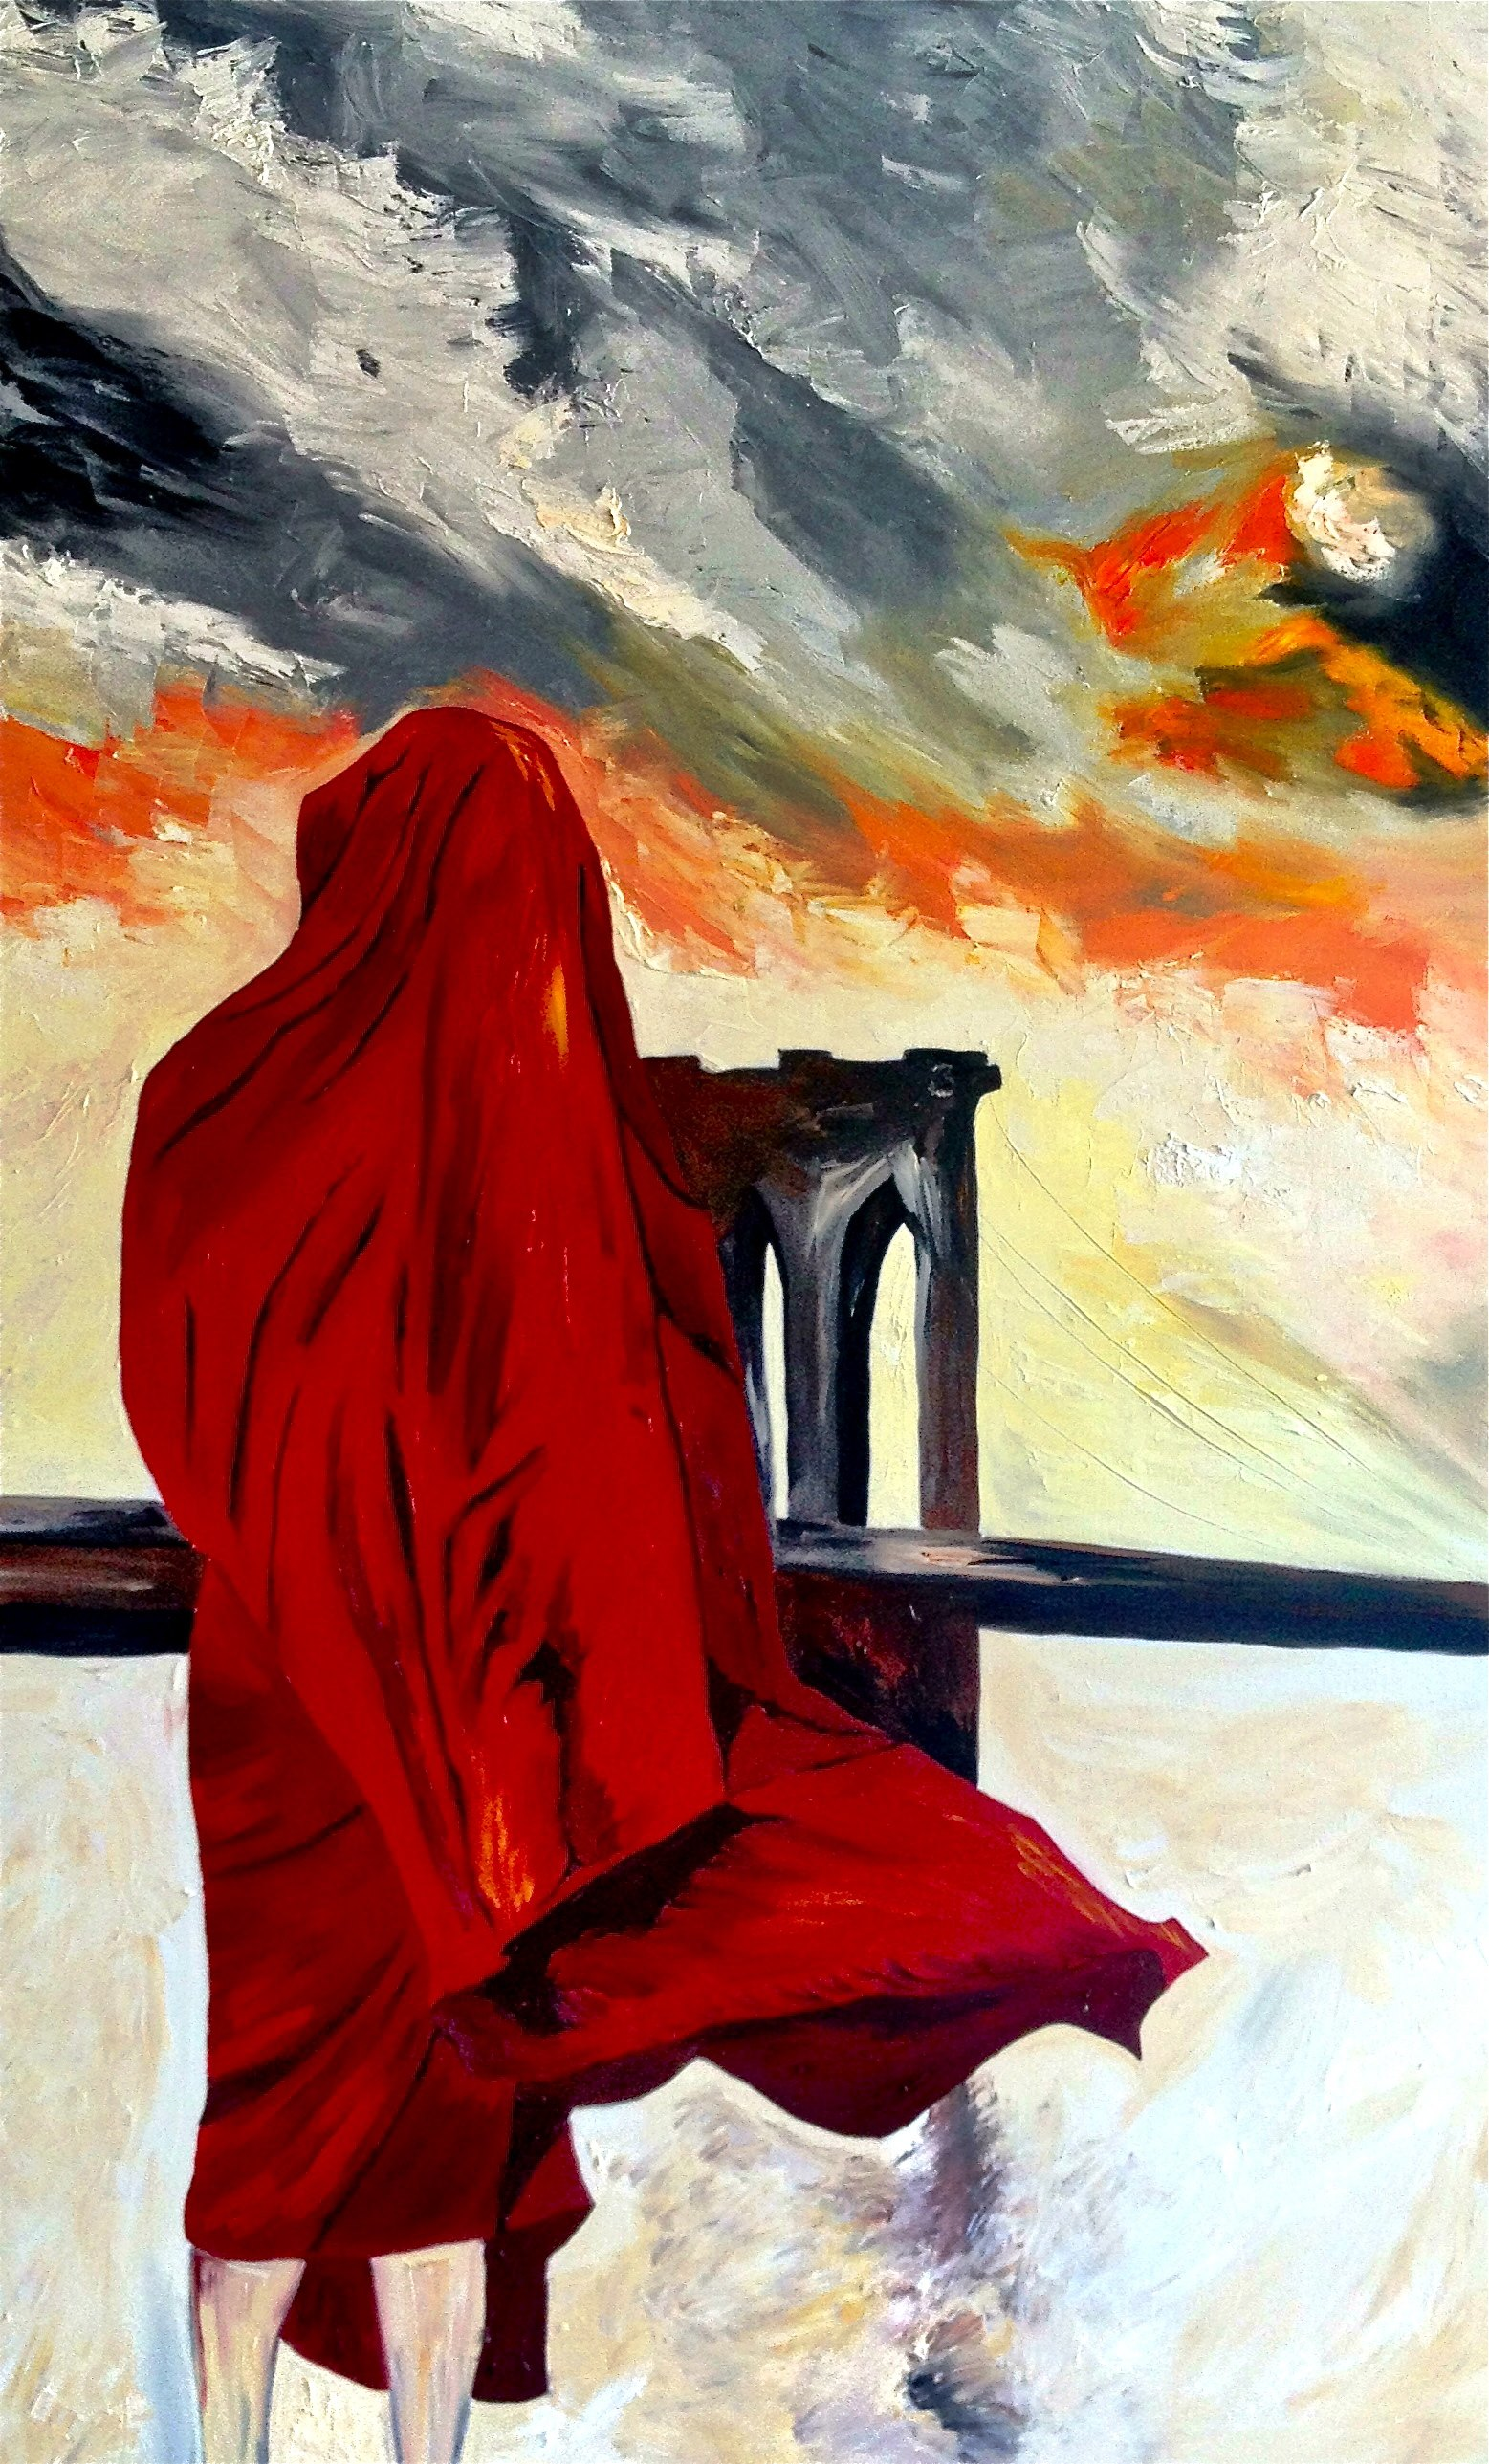 Monk in Brooklyn artwork by Leonor Anthony - art listed for sale on Artplode